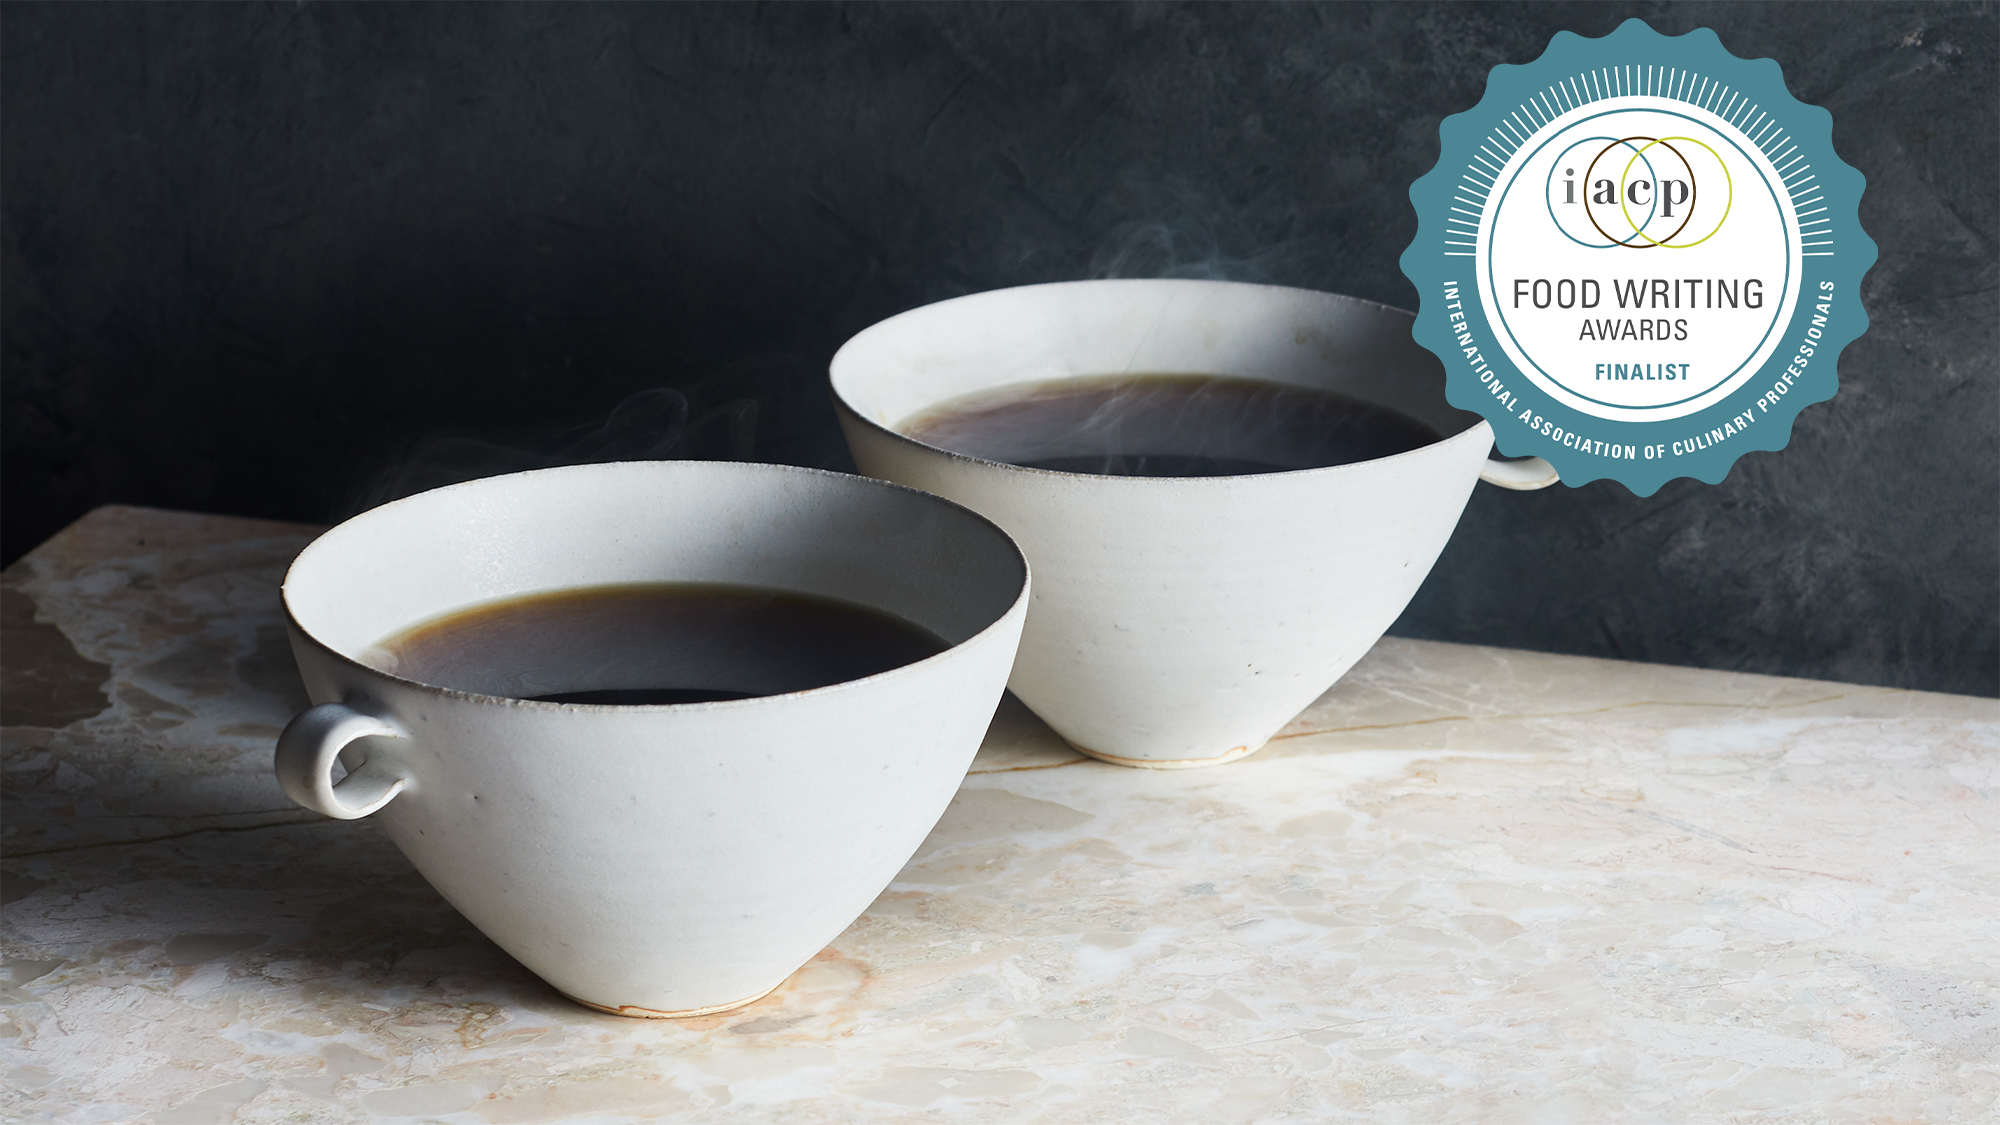 2 cups of coffee on a marble surface with a dark background